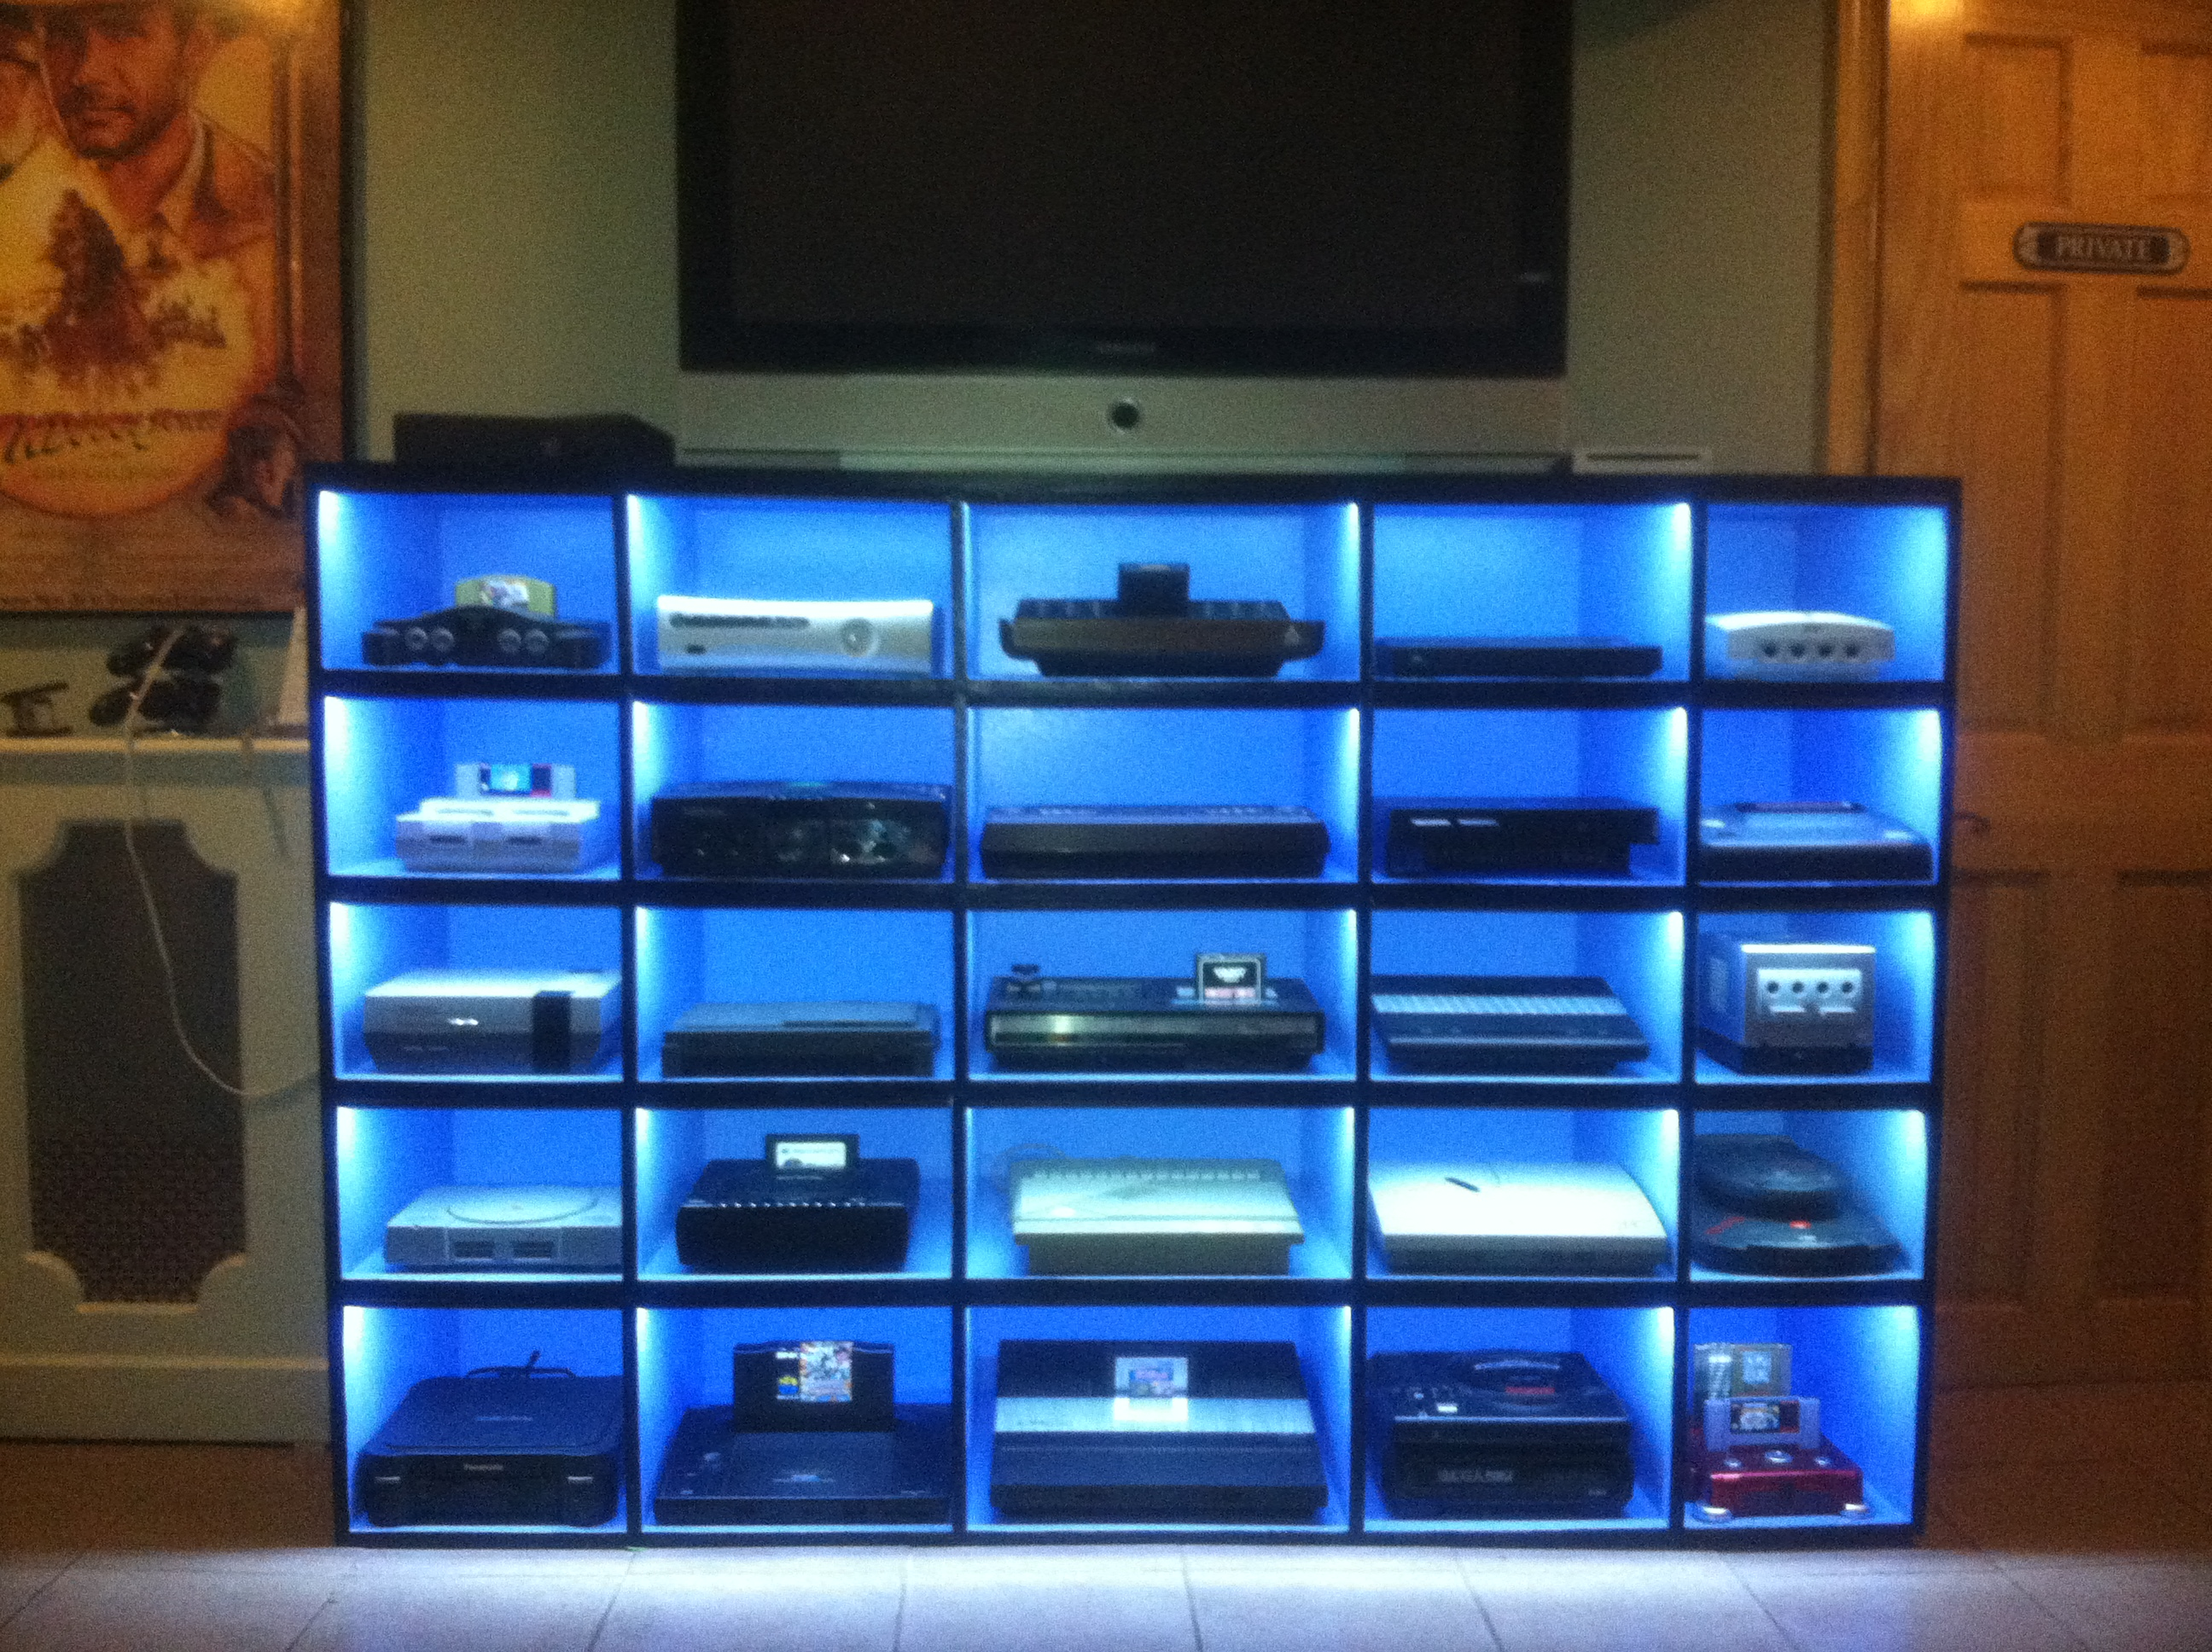 Bedroom Furniture Video game console